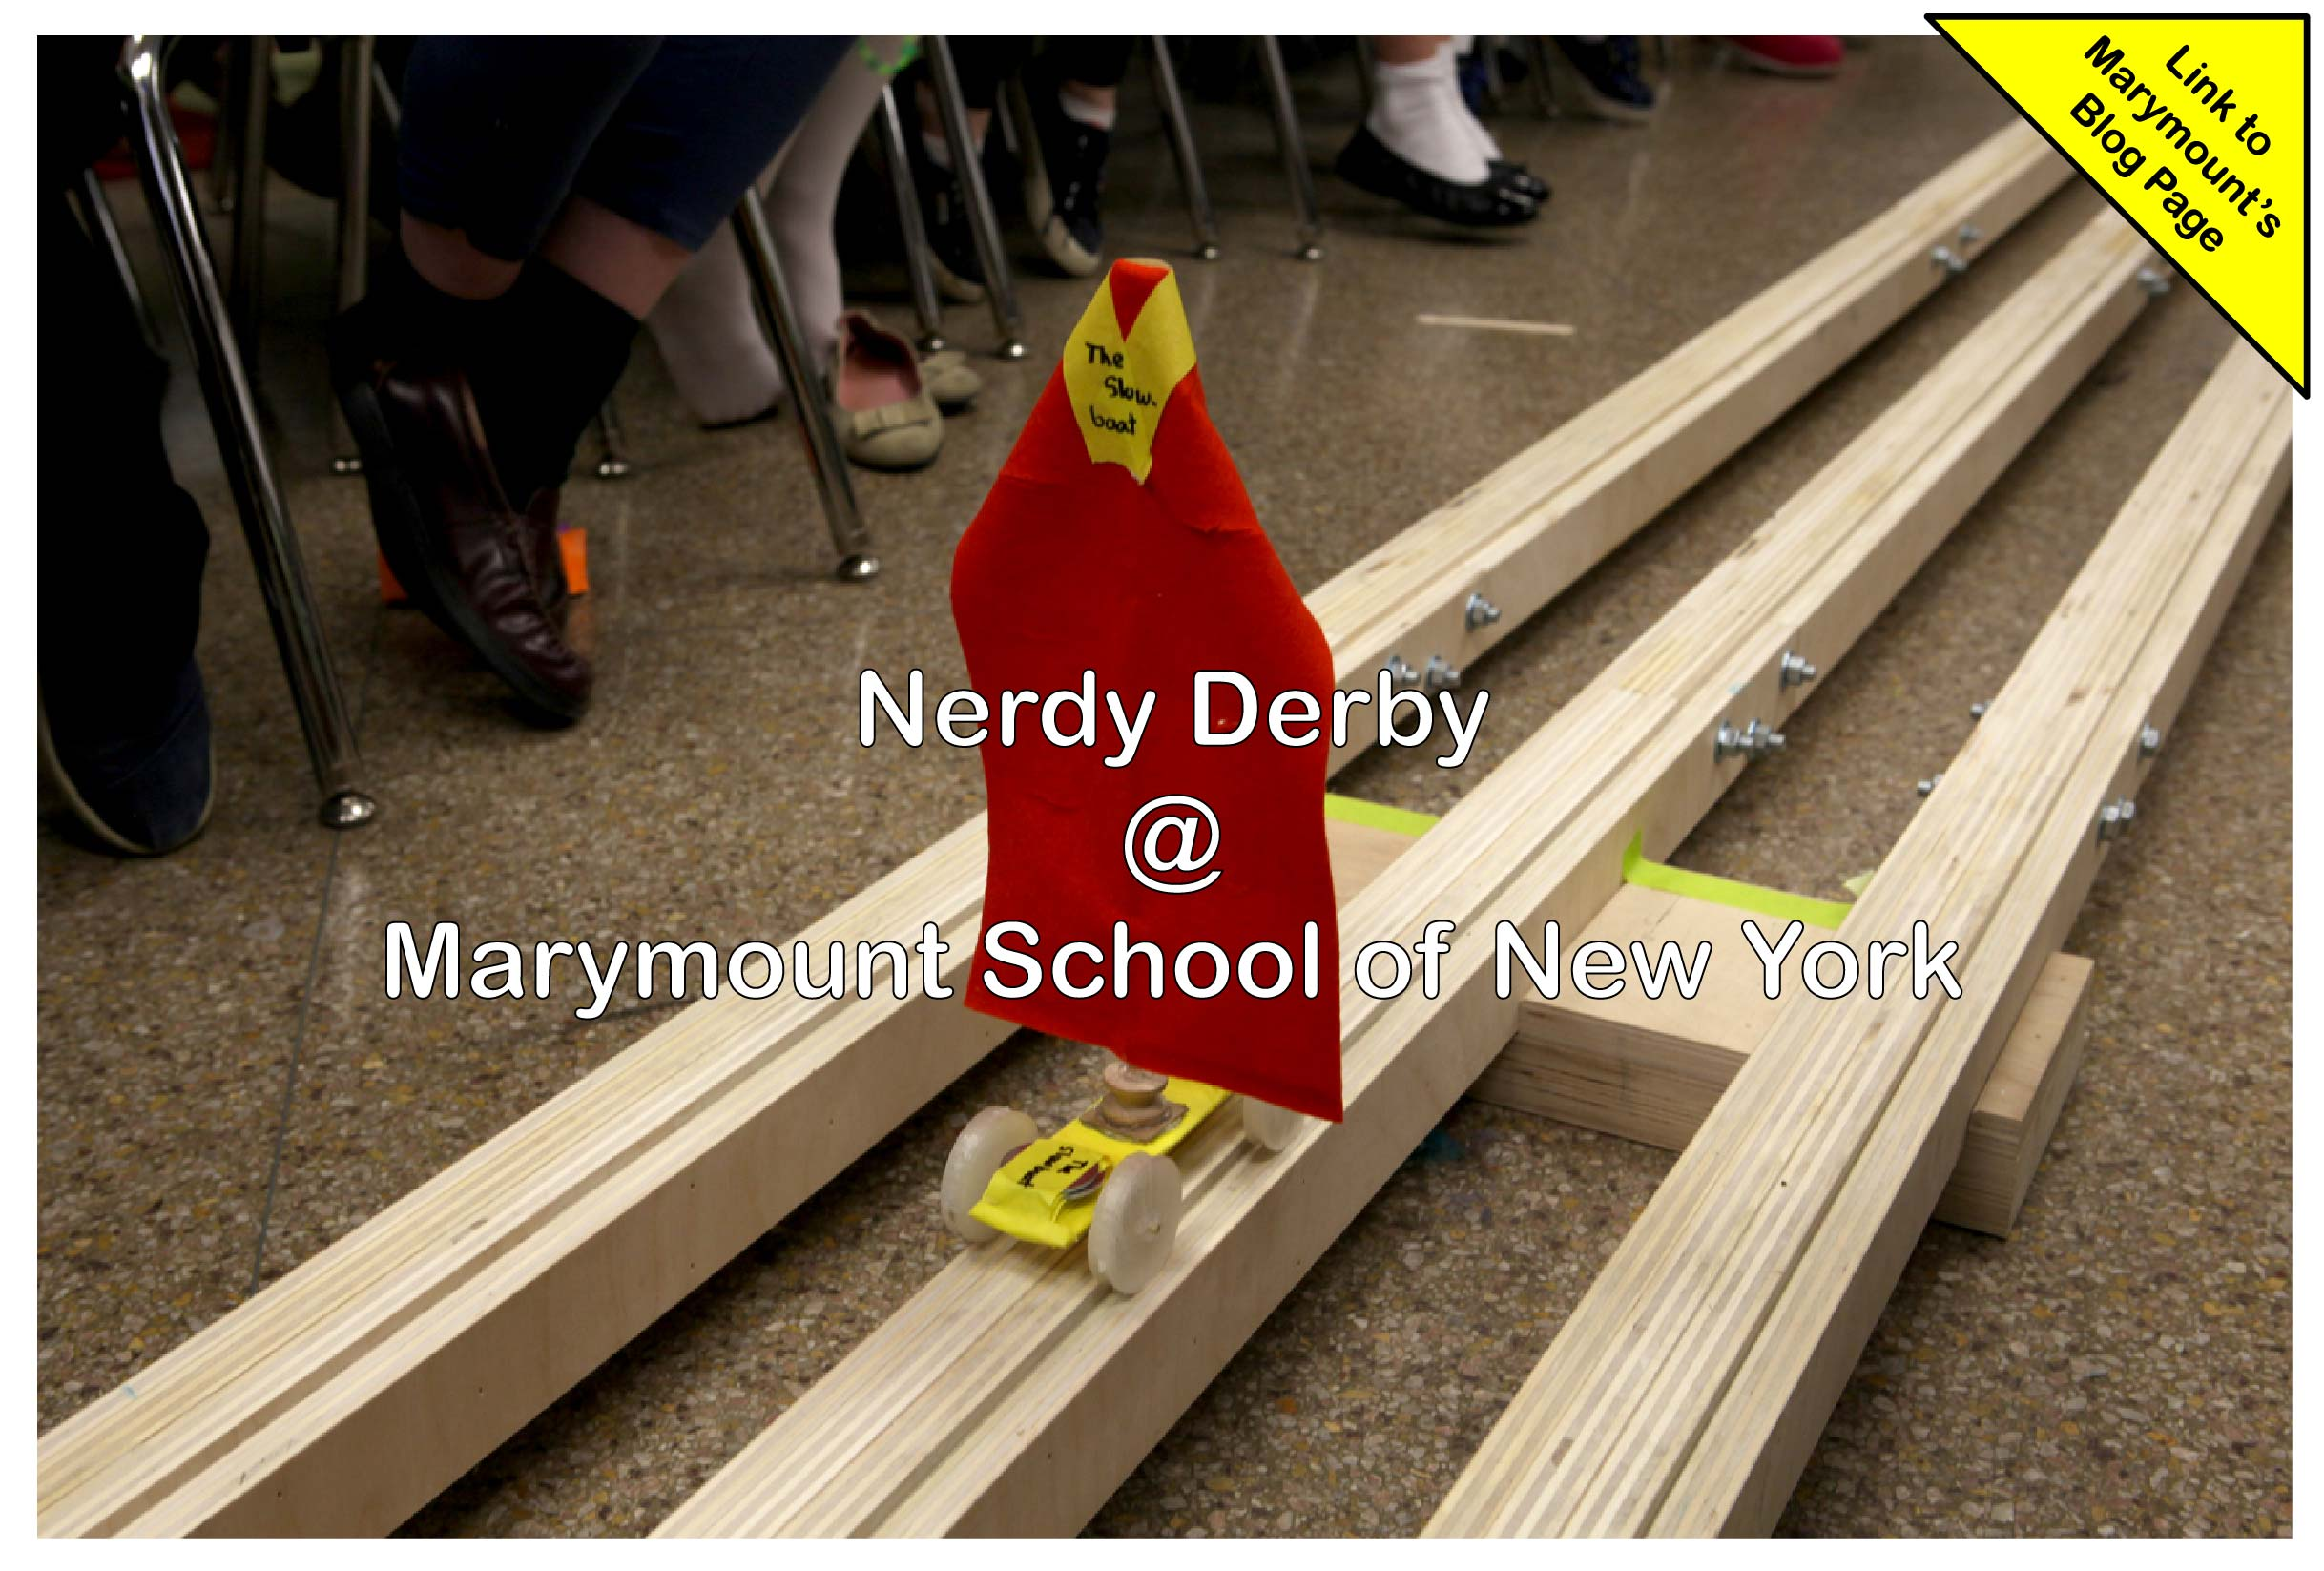 Marymount School of New York dedicates 1 full week to Nerdy Derby .They learn various physics principles, engineering of cars, and the spirit of team work. Click on image to link to their blog or go here:  http://www.marymountnyc.org/page/Galleries/Nerdy-Derby-2016